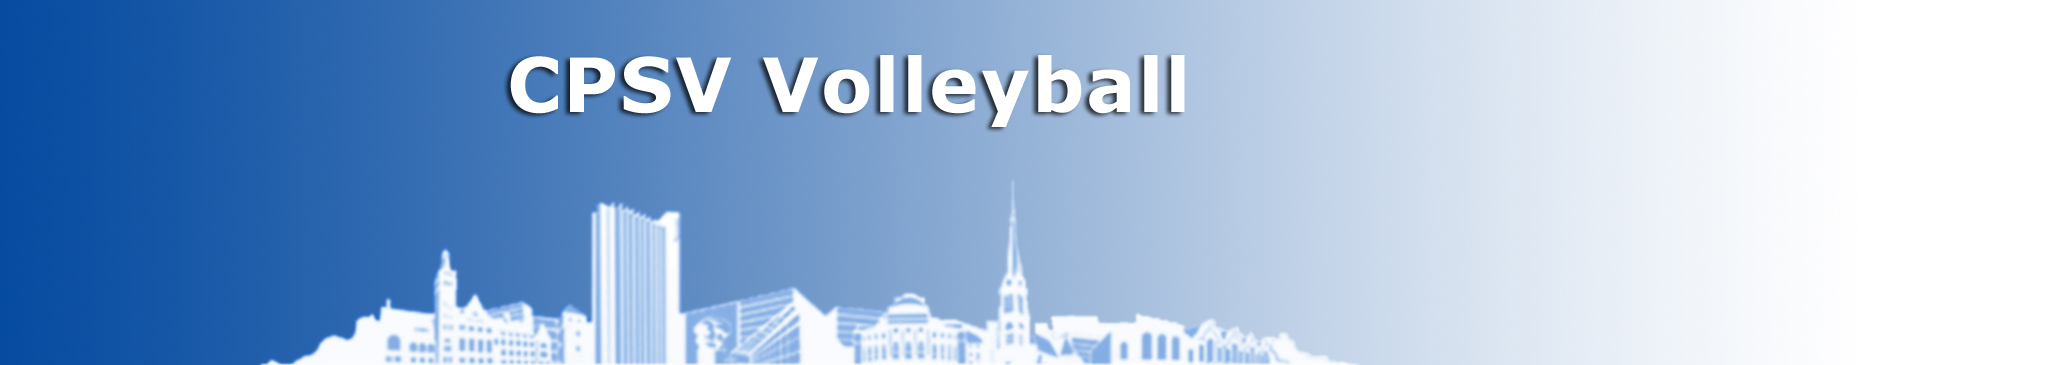 CPSV Volleyball